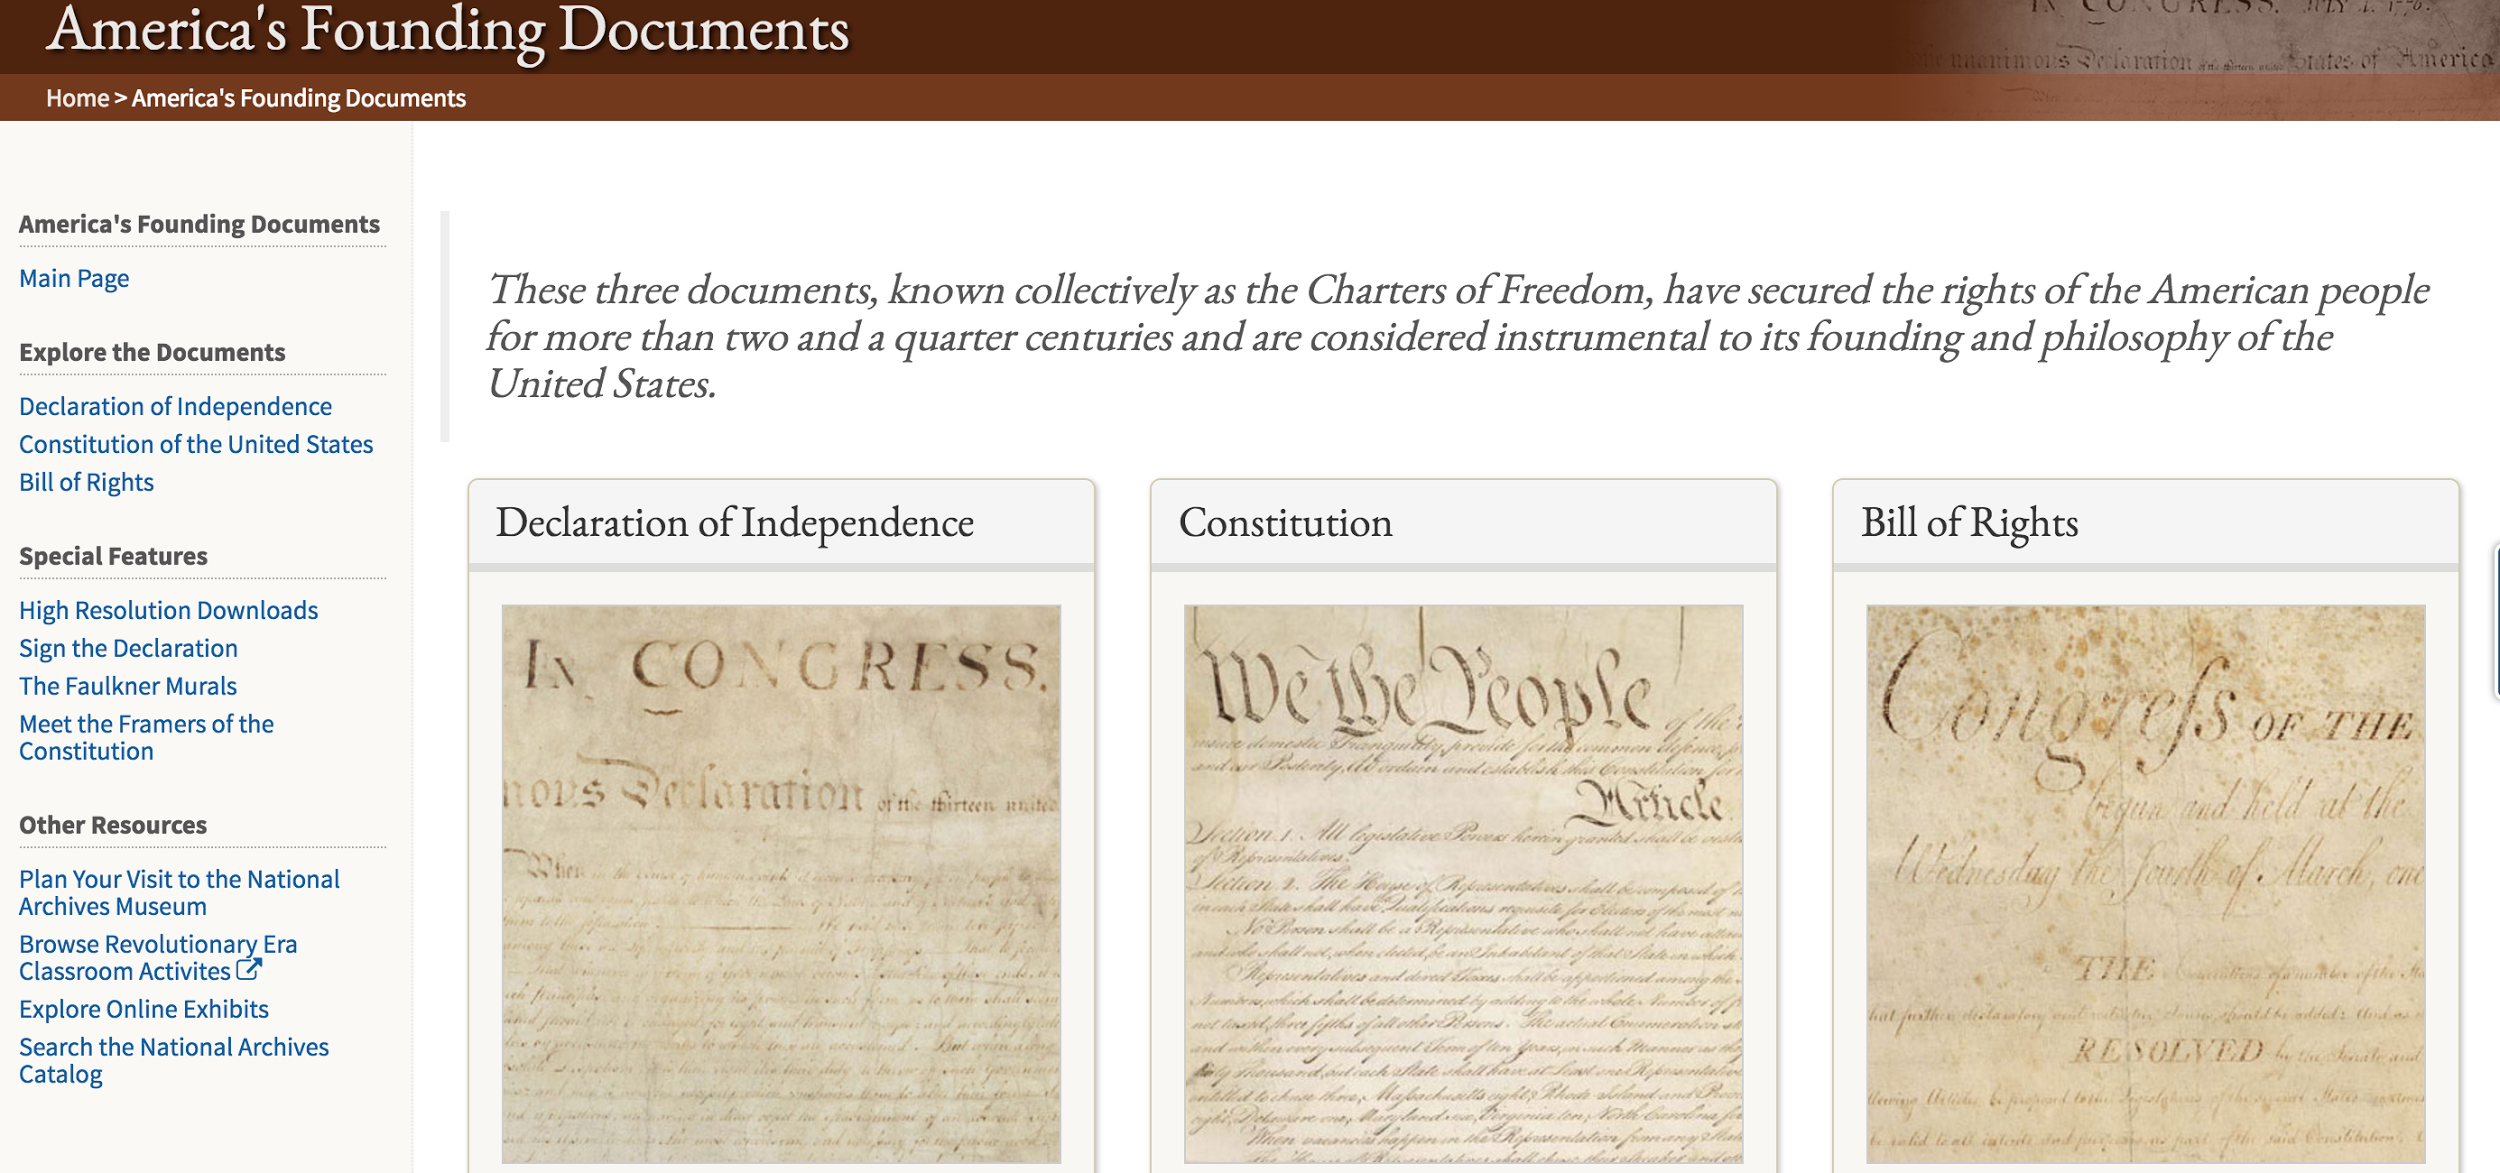 Refreshed look for America's Founding Documents